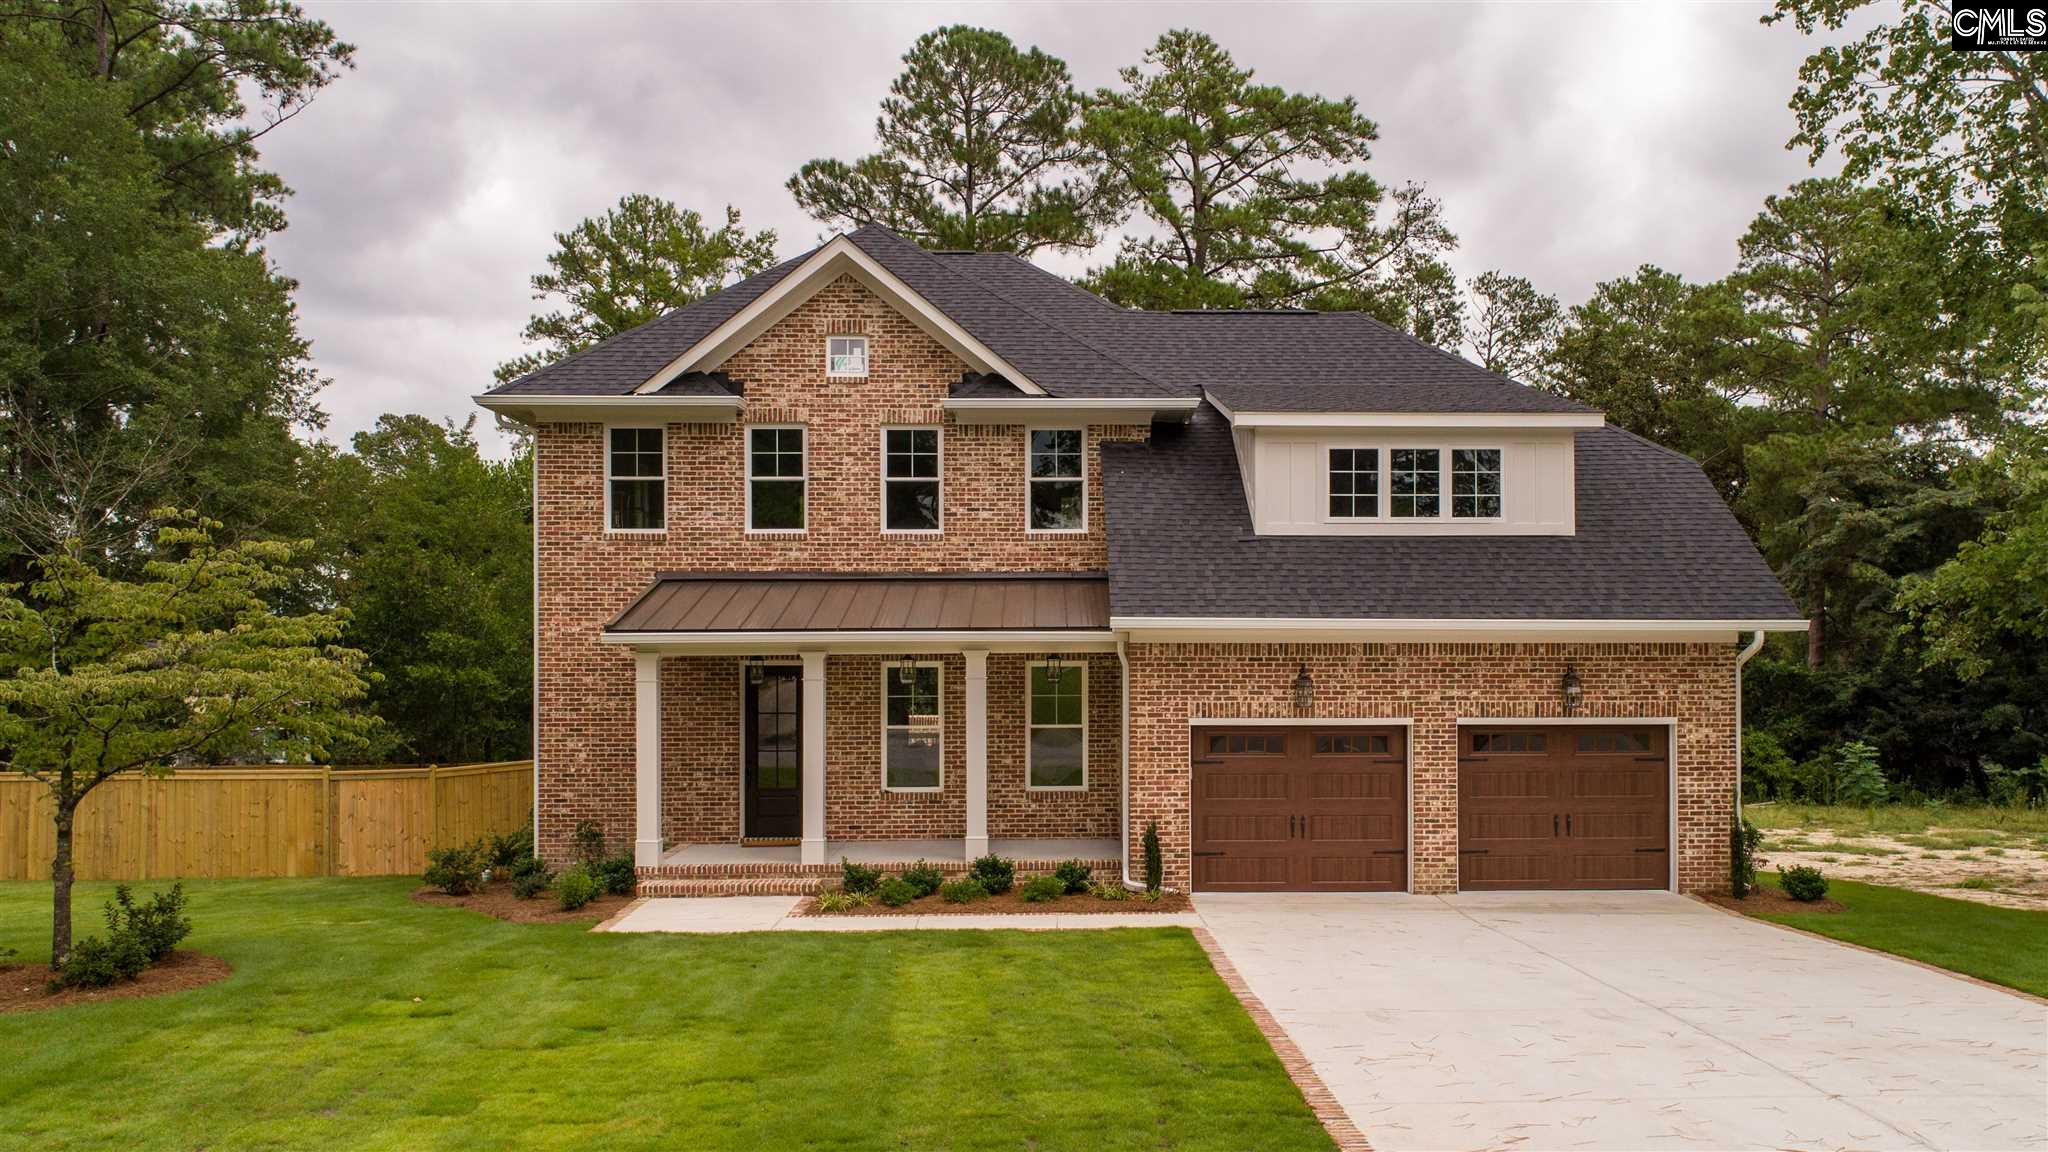 5140 Furman Columbia, SC 29206